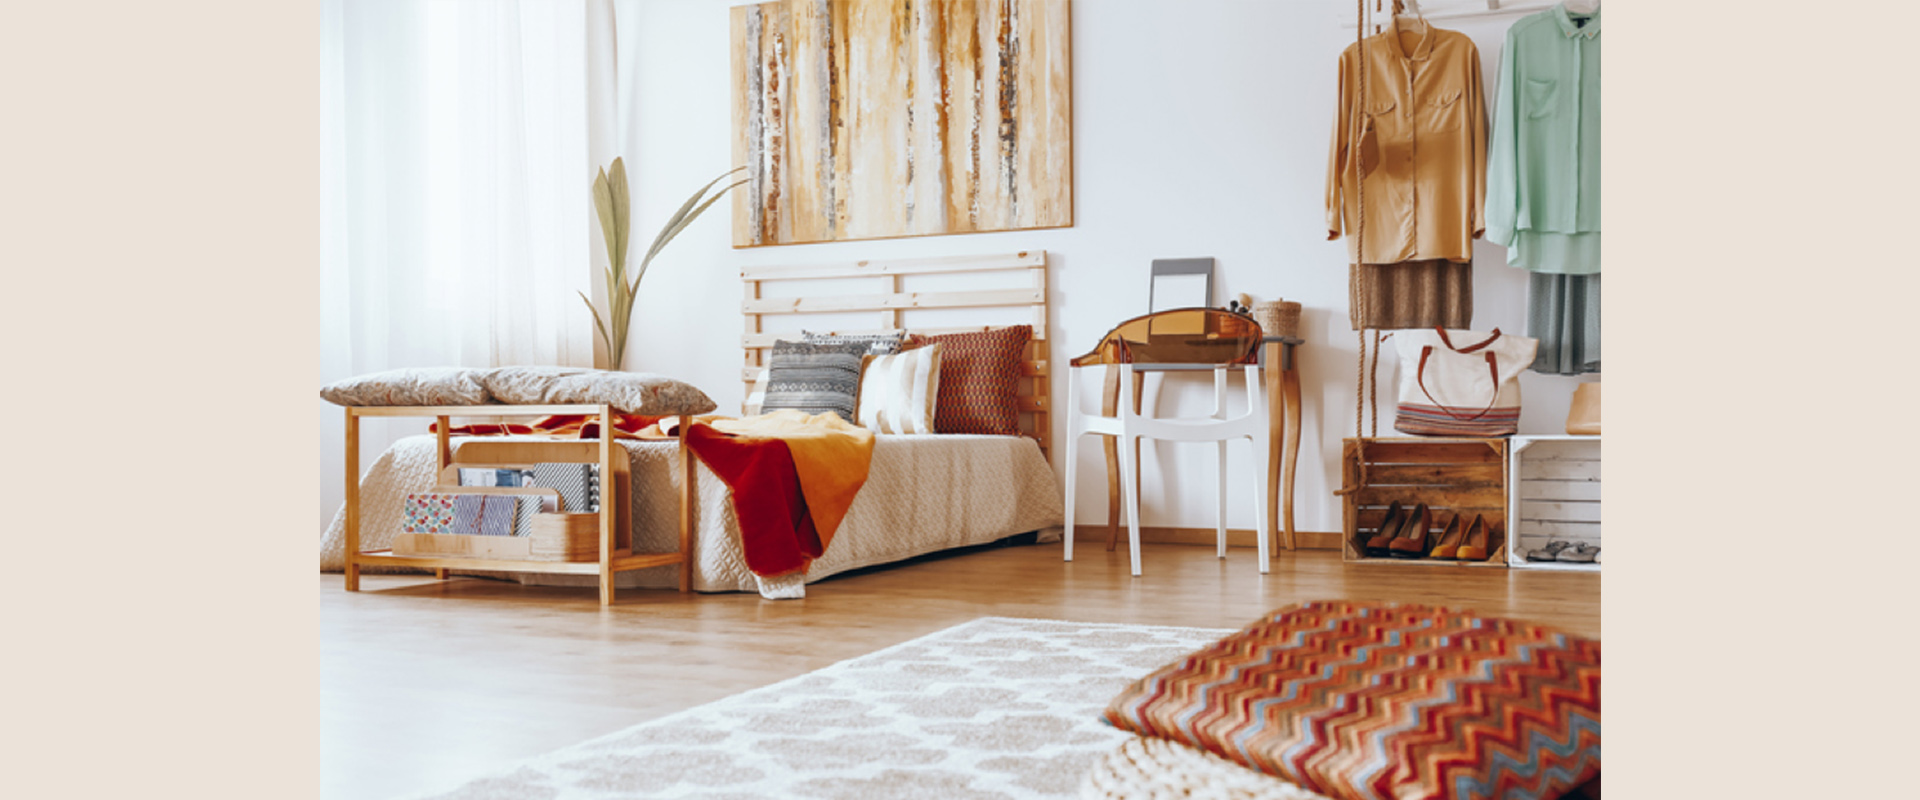 bconnected-blog-Celebrate your Culture Through Home Interior Design